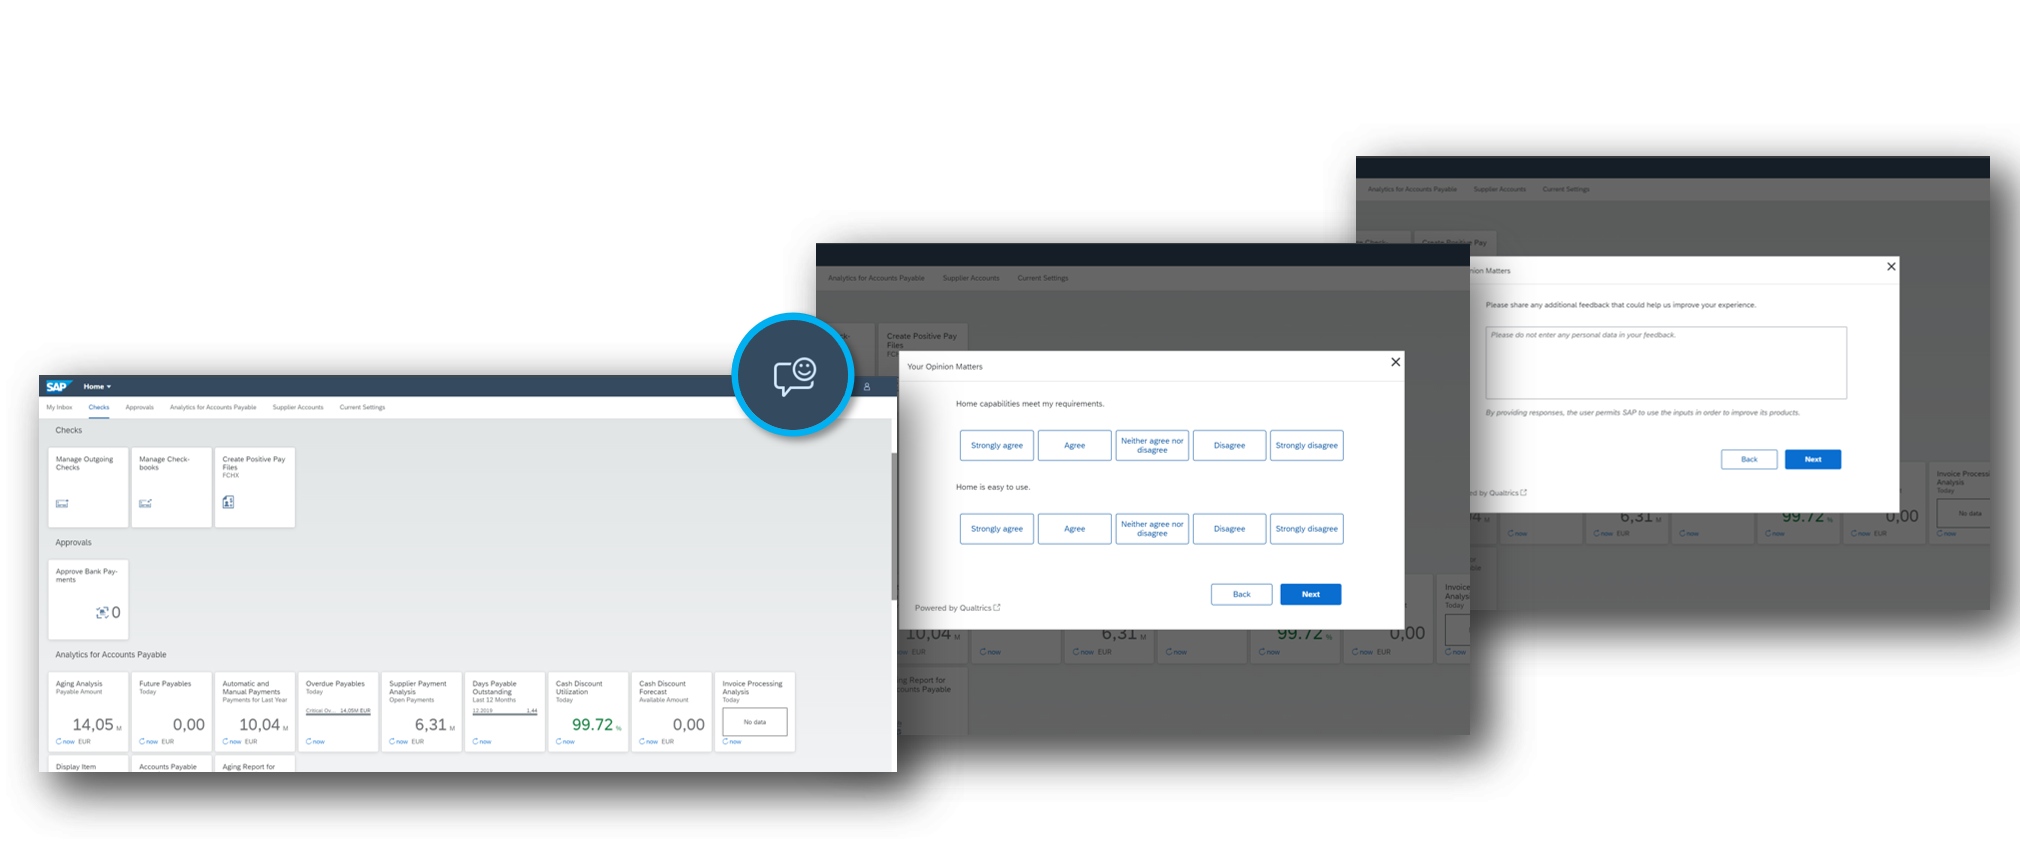 Three-screen%20overview%20of%20Product%20Experience%20Management%20%28PX%29%20at%20SAP.